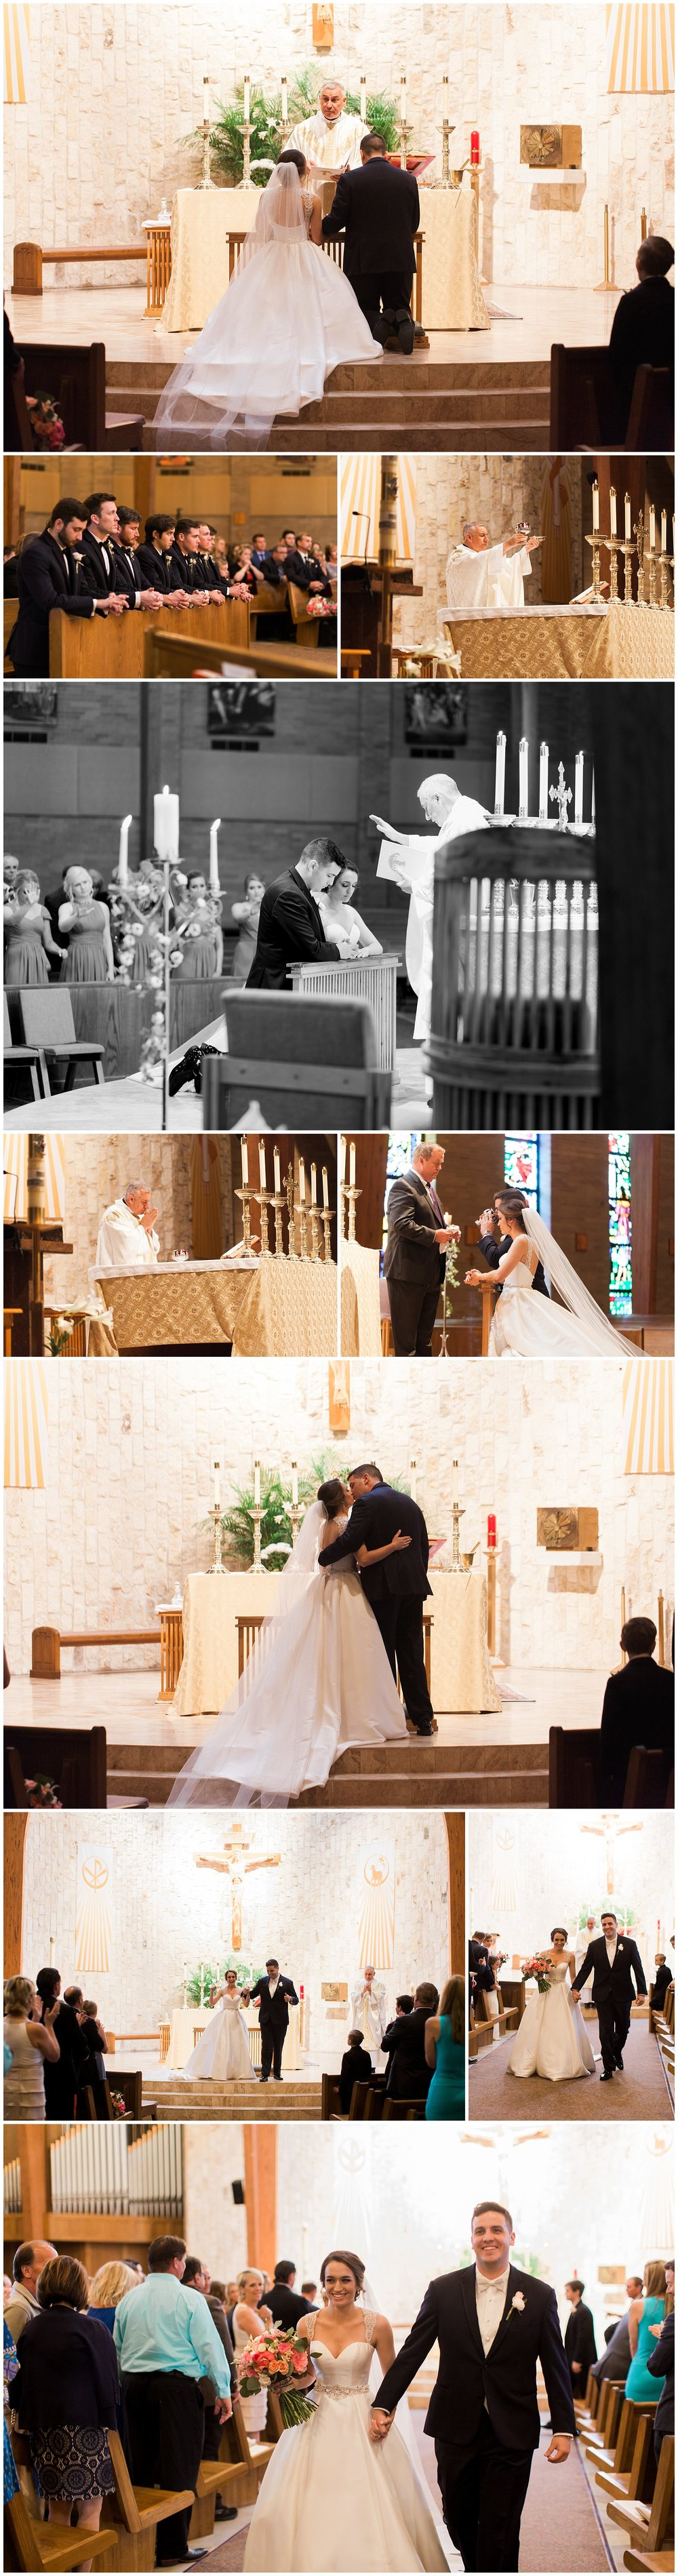 Brownstone_Reserve_Wedding_Kristina_Ross_Photography_0019.jpg